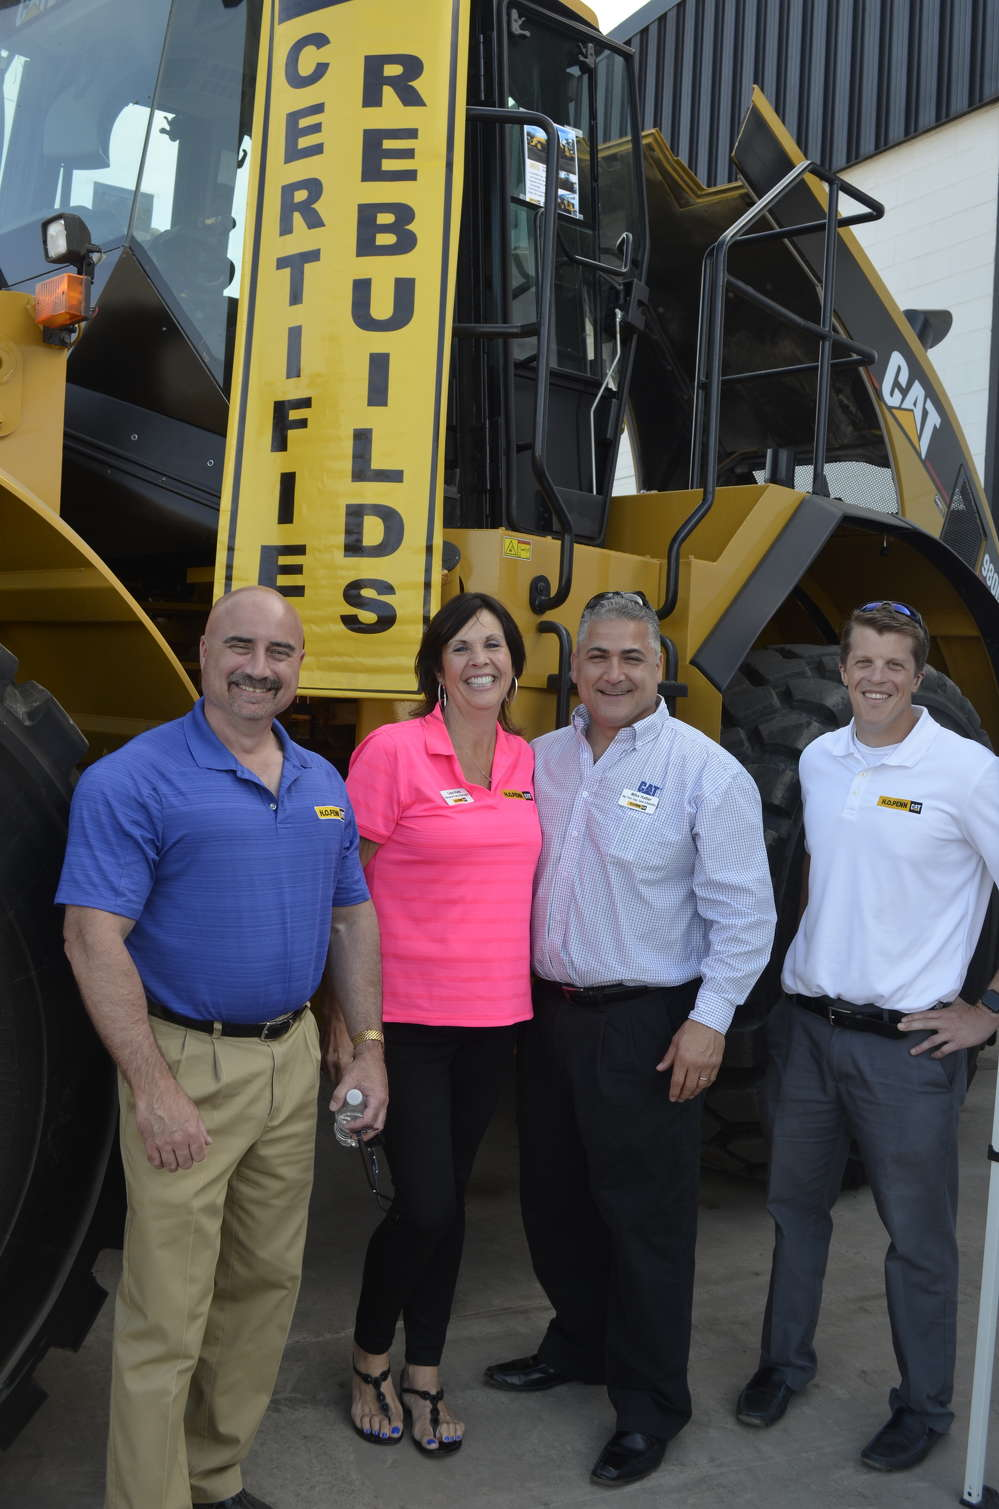 Cat Certified Rebuilds is an option available through H.O. Penn that significantly extends the life of equipment. (L-R): Jeff Mitchell, president of H.O. Penn; Lisa Katz, H.O. Penn general parts manager; Mike Hattar, H.O. Penn product support manager; and Giro Samale, Caterpillar Aftermarket Solutions Representative.